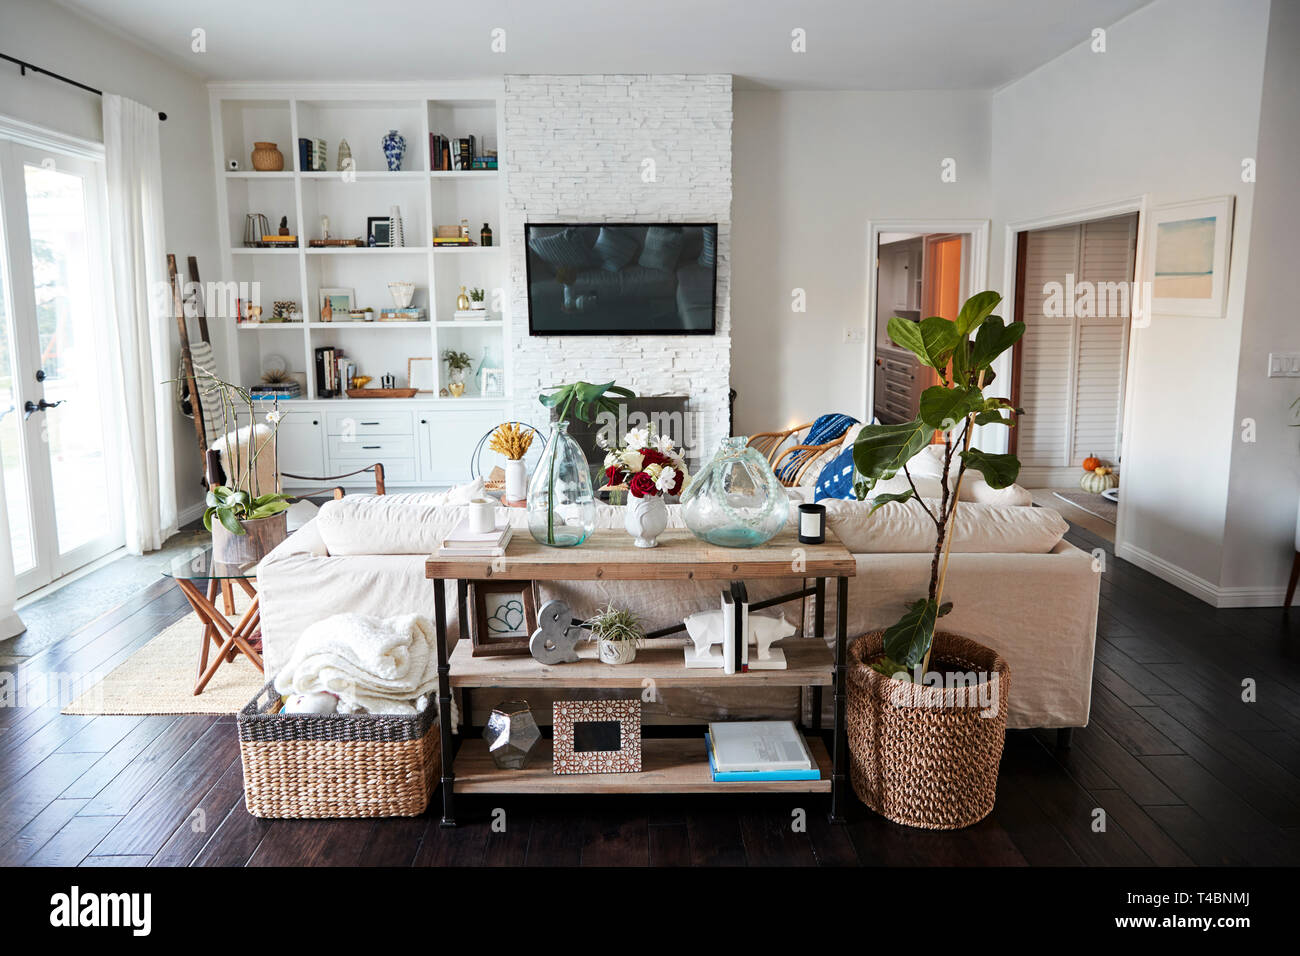 A Family Living Room With White Walls And Dark Wood Floorboards Seen In Daylight From Behind The Sofa Which Sits In A Central Position No People In Shot Stock Photo Alamy